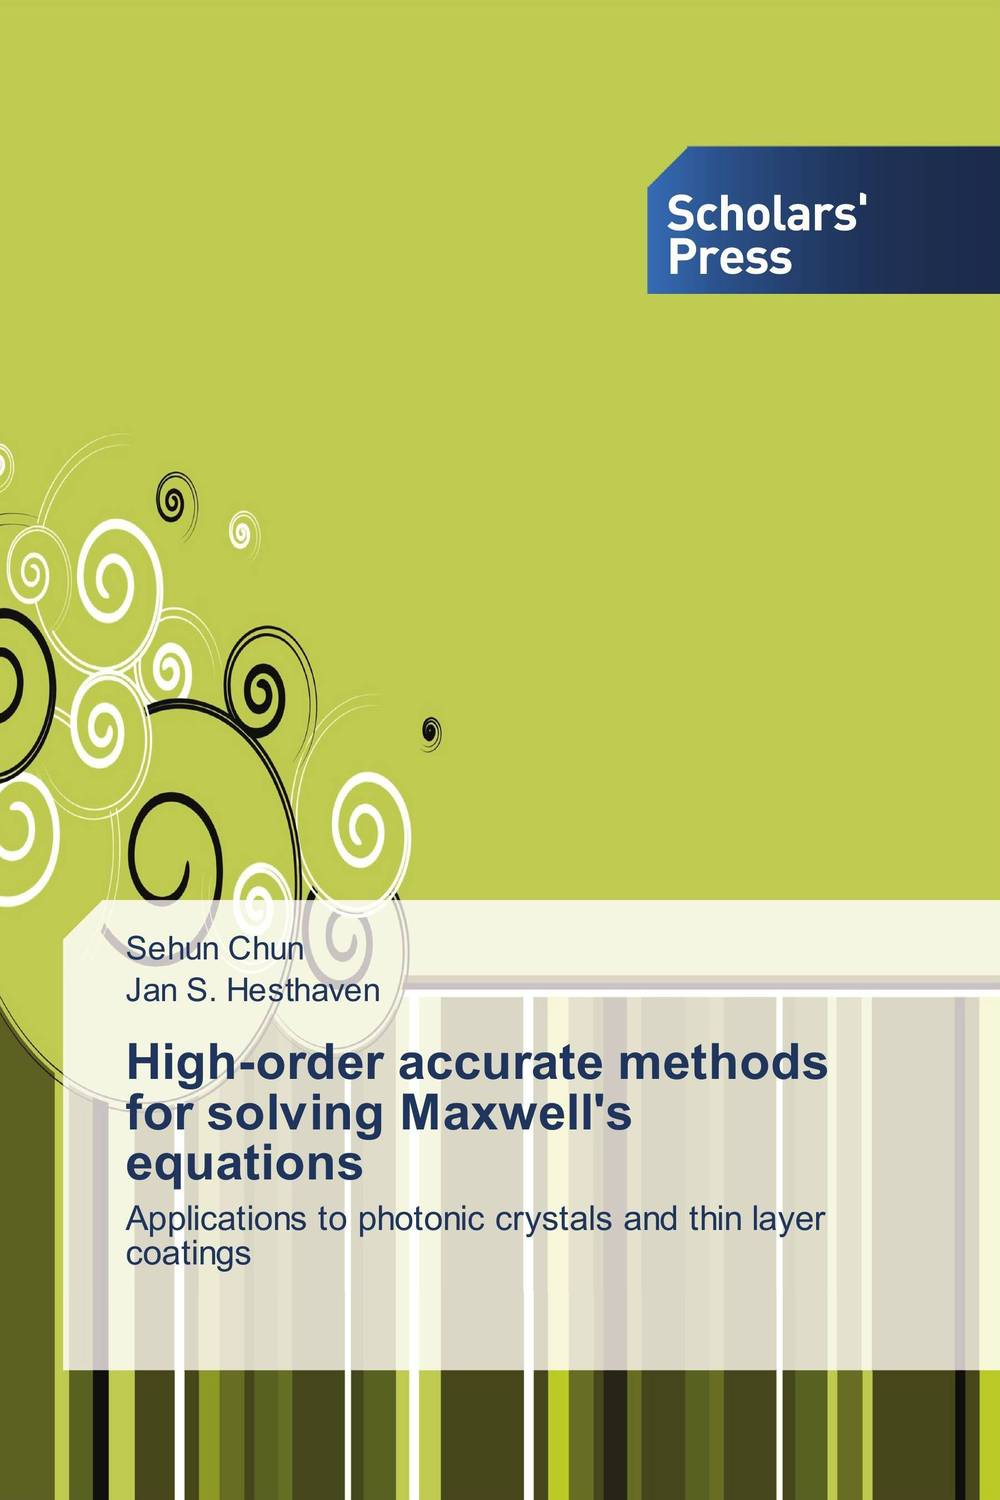 High-order accurate methods for solving Maxwell's equations шерлинг ю парадокс книга 1 и 2 двухсторонняя